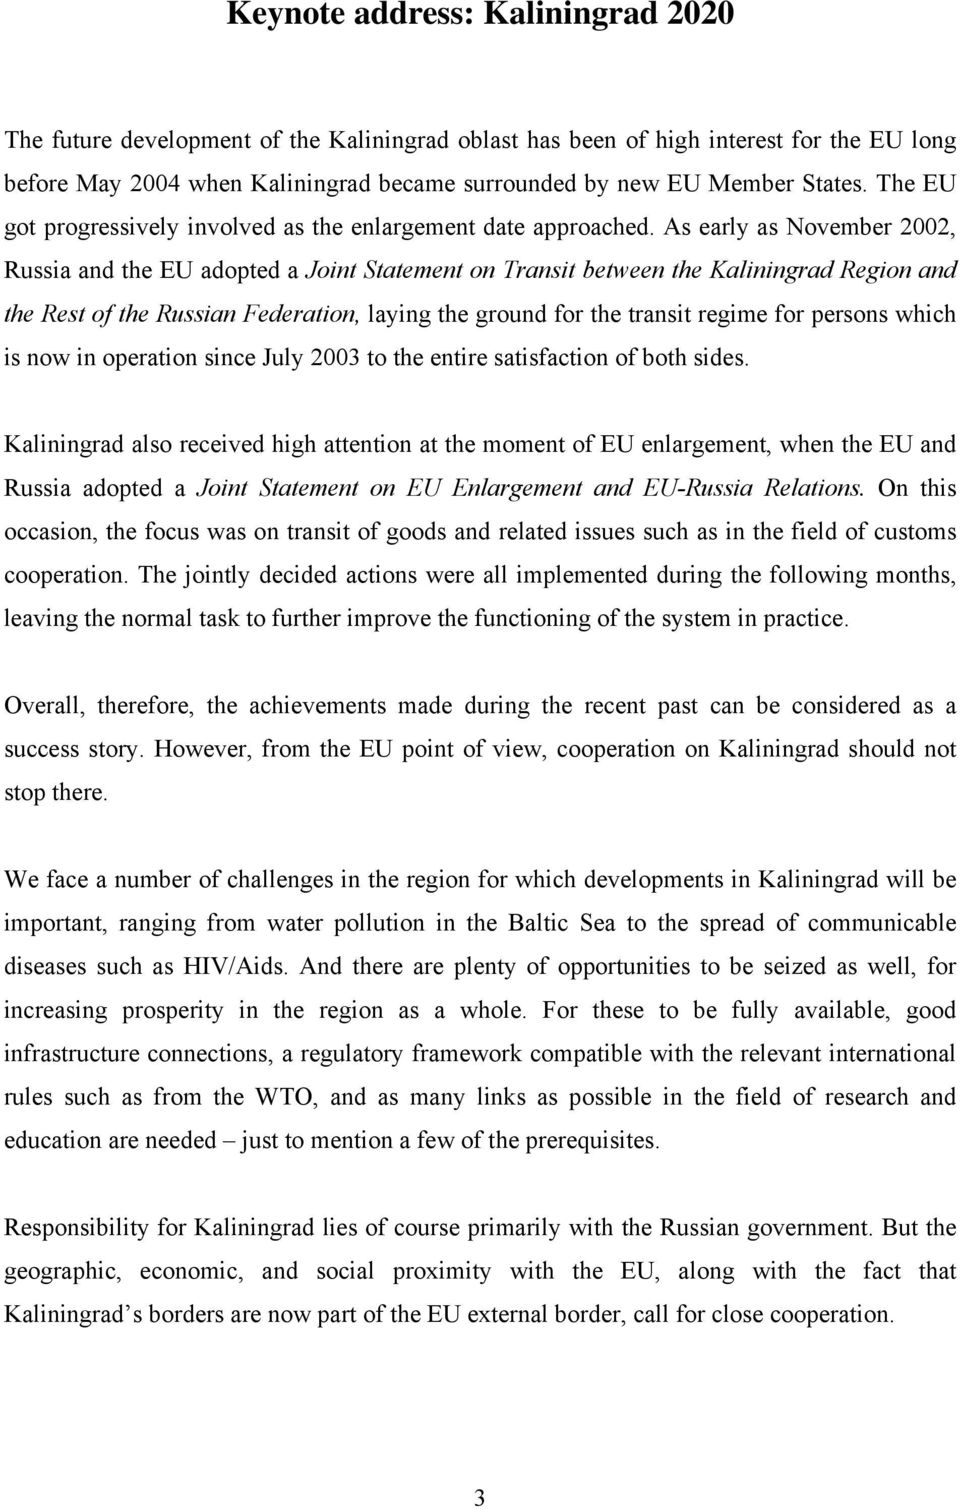 As early as November 2002, Russia and the EU adopted a Joint Statement on Transit between the Kaliningrad Region and the Rest of the Russian Federation, laying the ground for the transit regime for